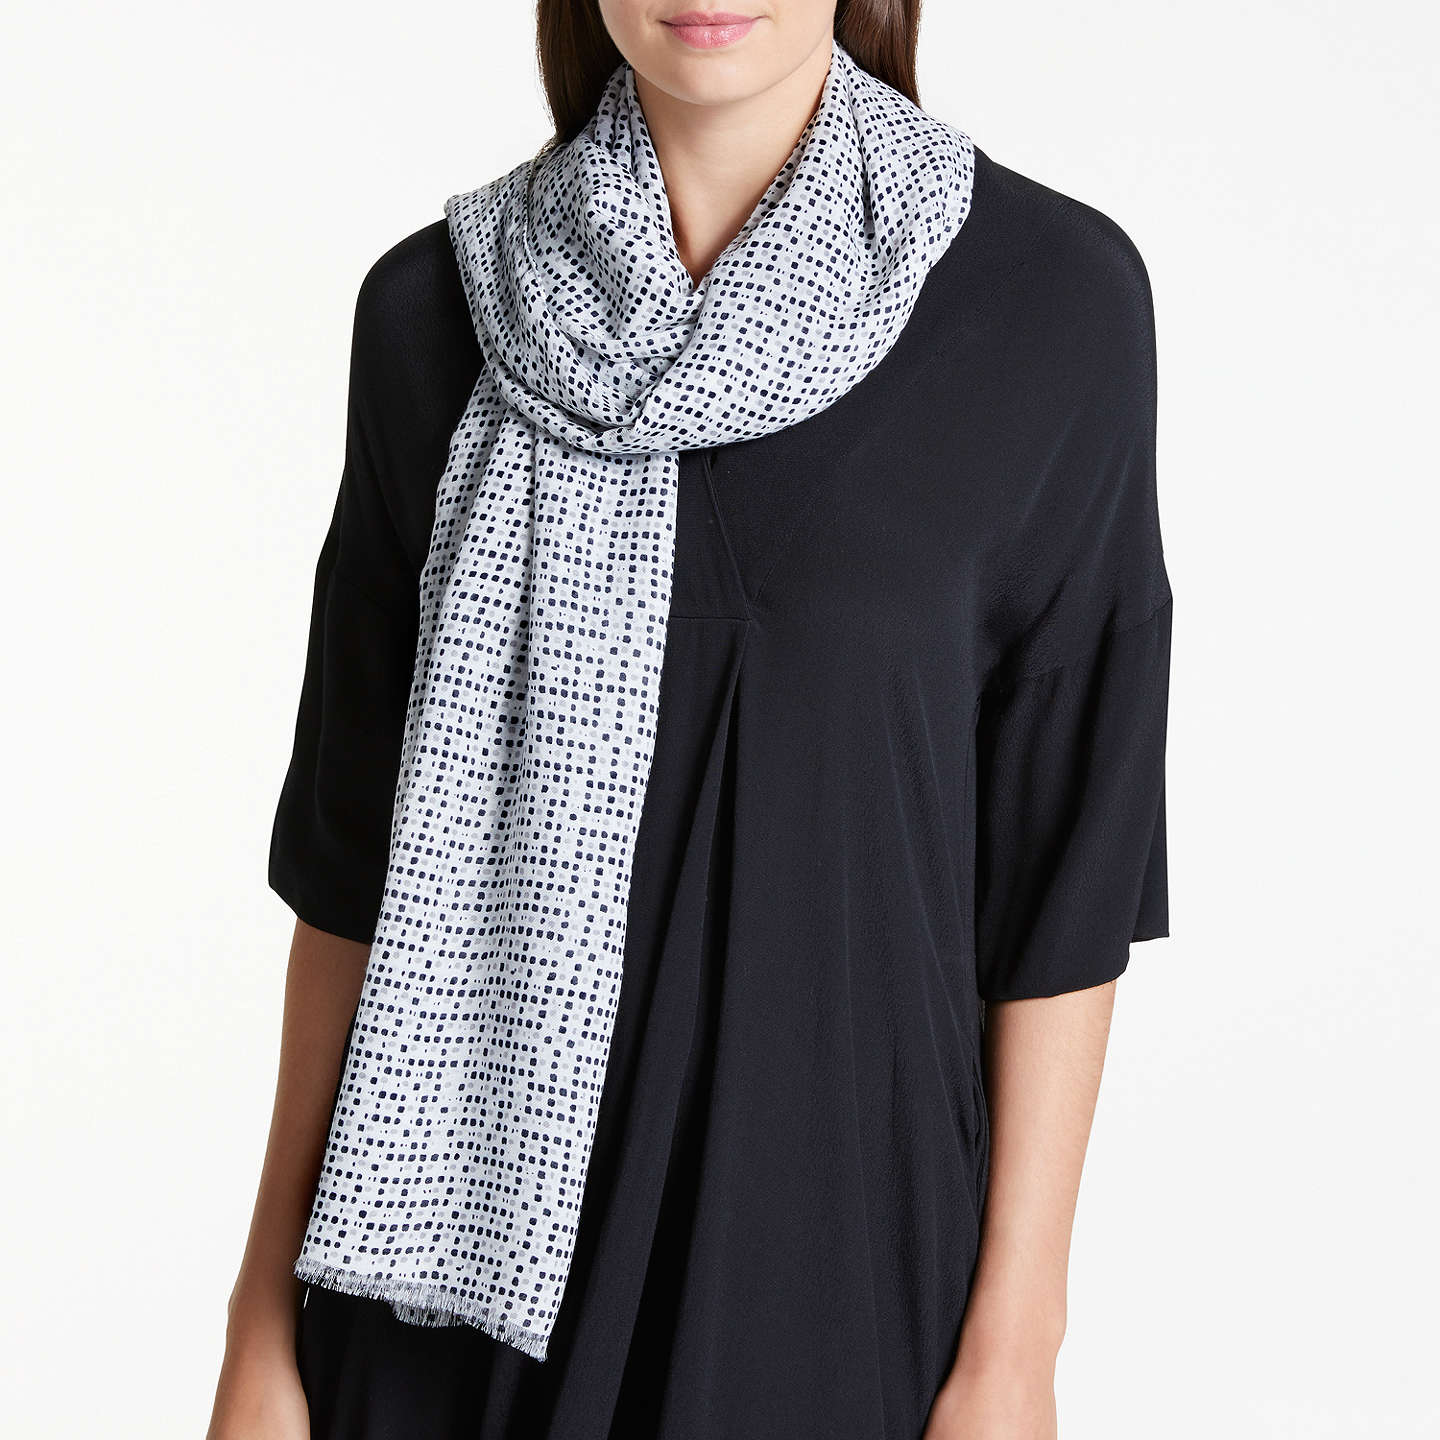 BuyJohn Lewis Square Dot Print Scarf, Black Mix Online at johnlewis.com